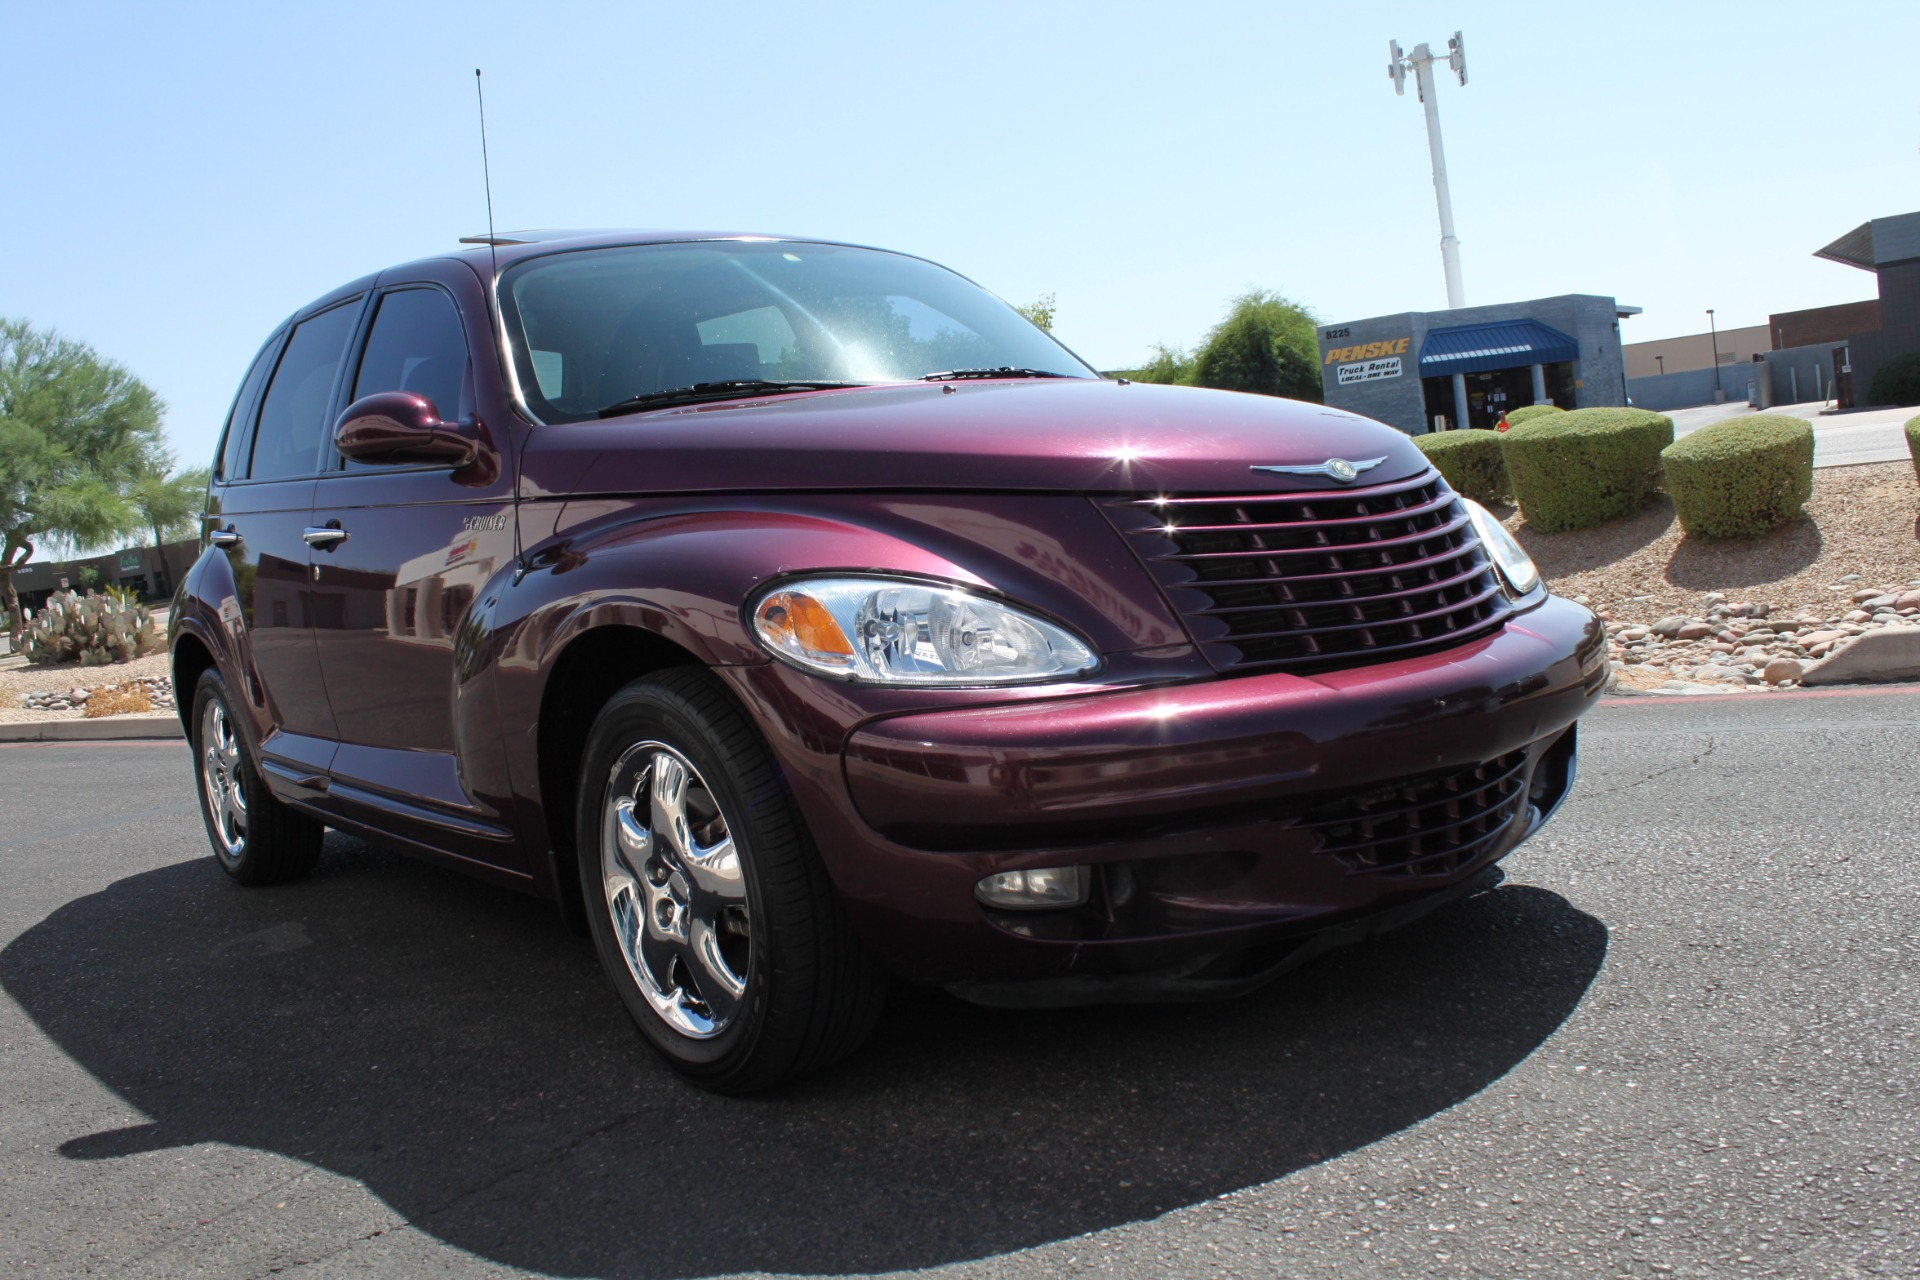 Used-2002-Chrysler-PT-Cruiser-Limited-Mercedes-Benz